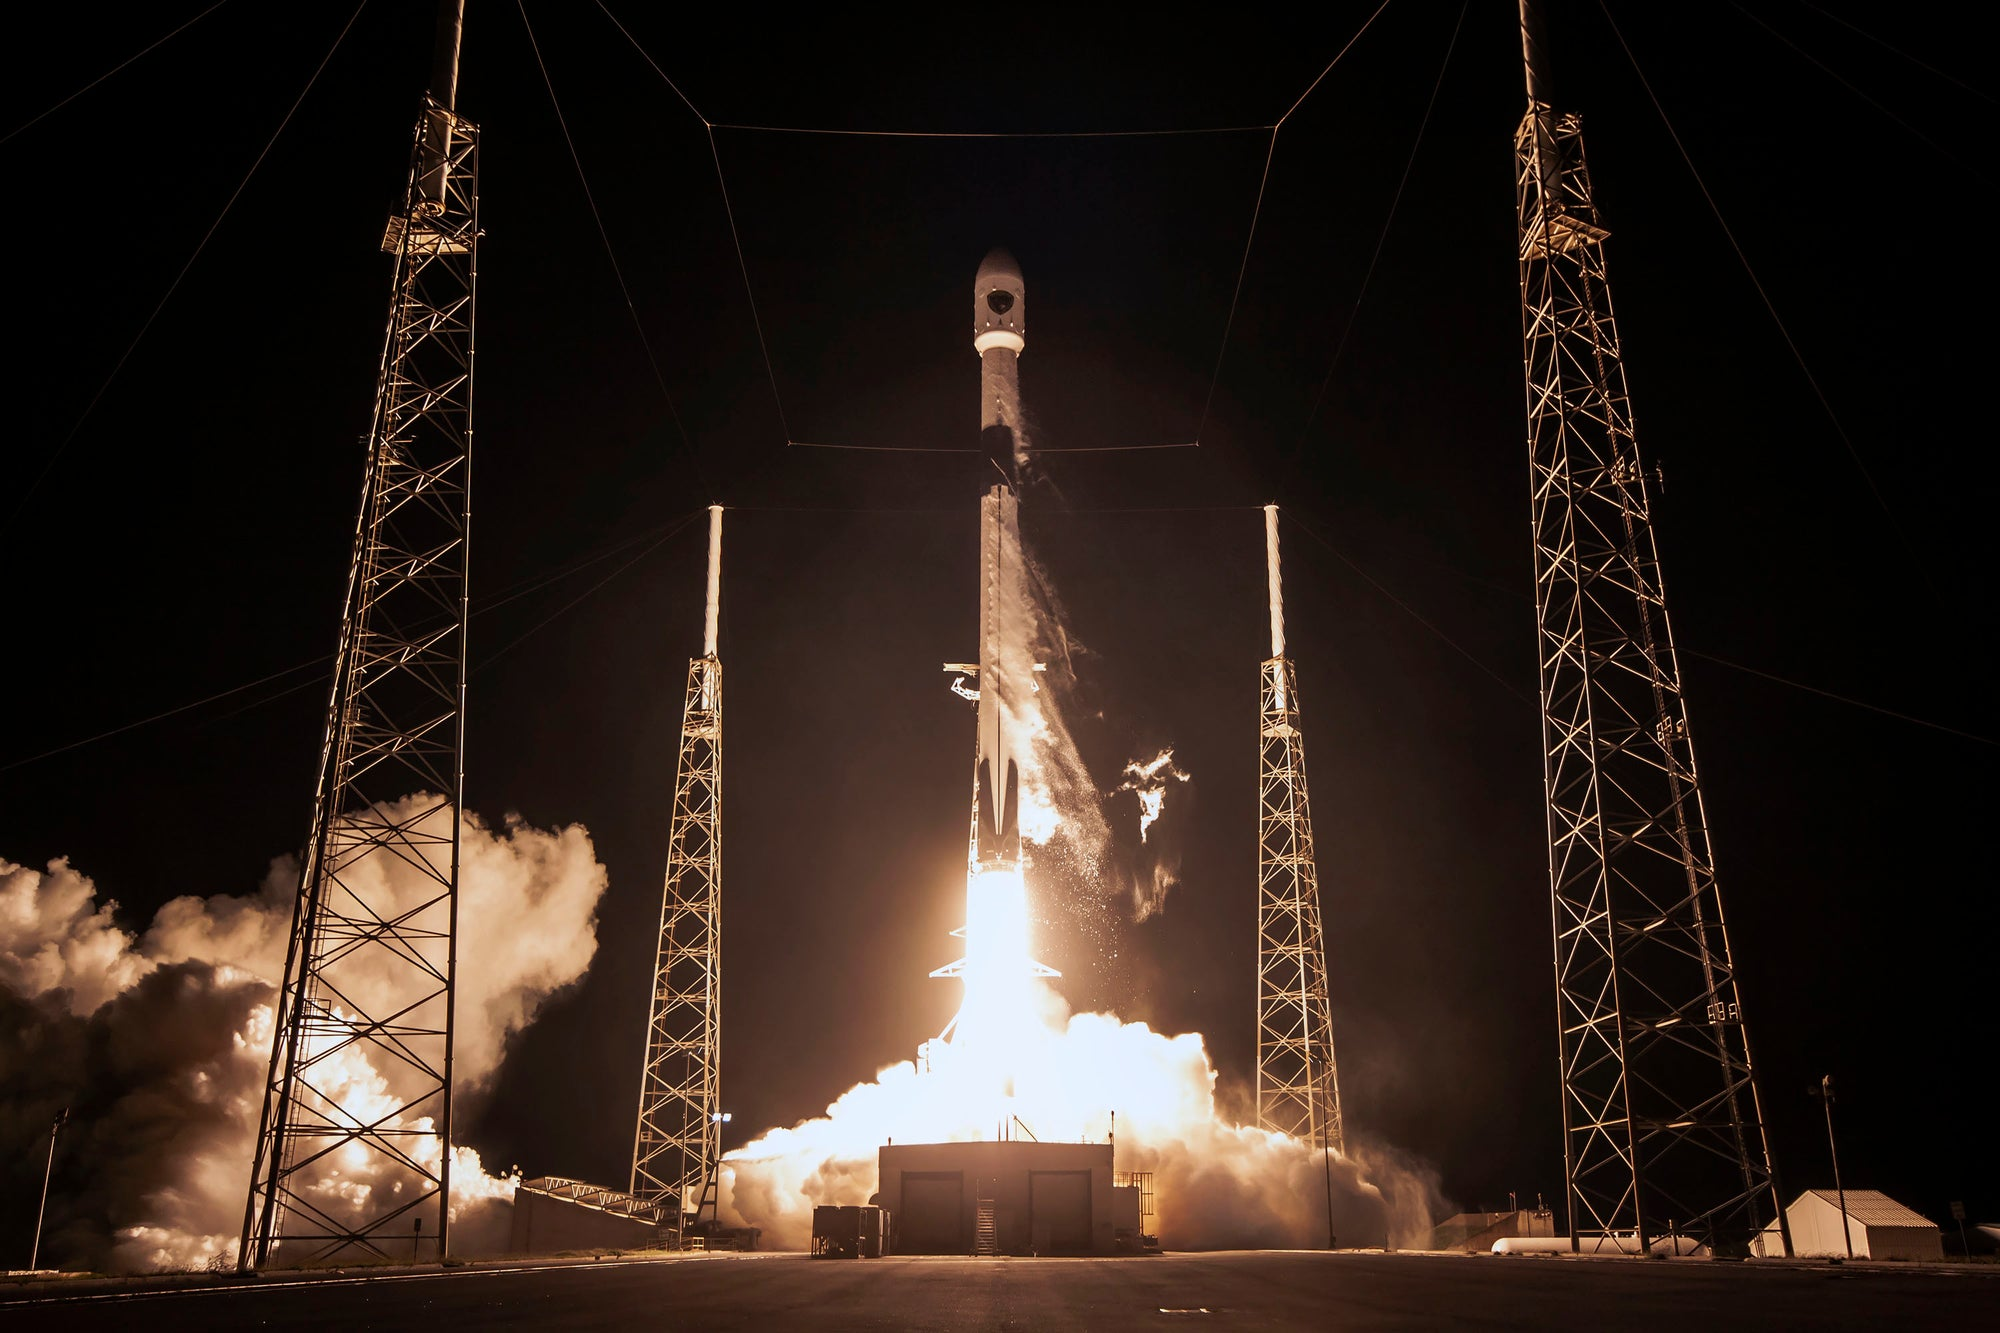 SpaceX will use previously-flown Falcon 9 rockets for U.S. Space Force National Security Missions